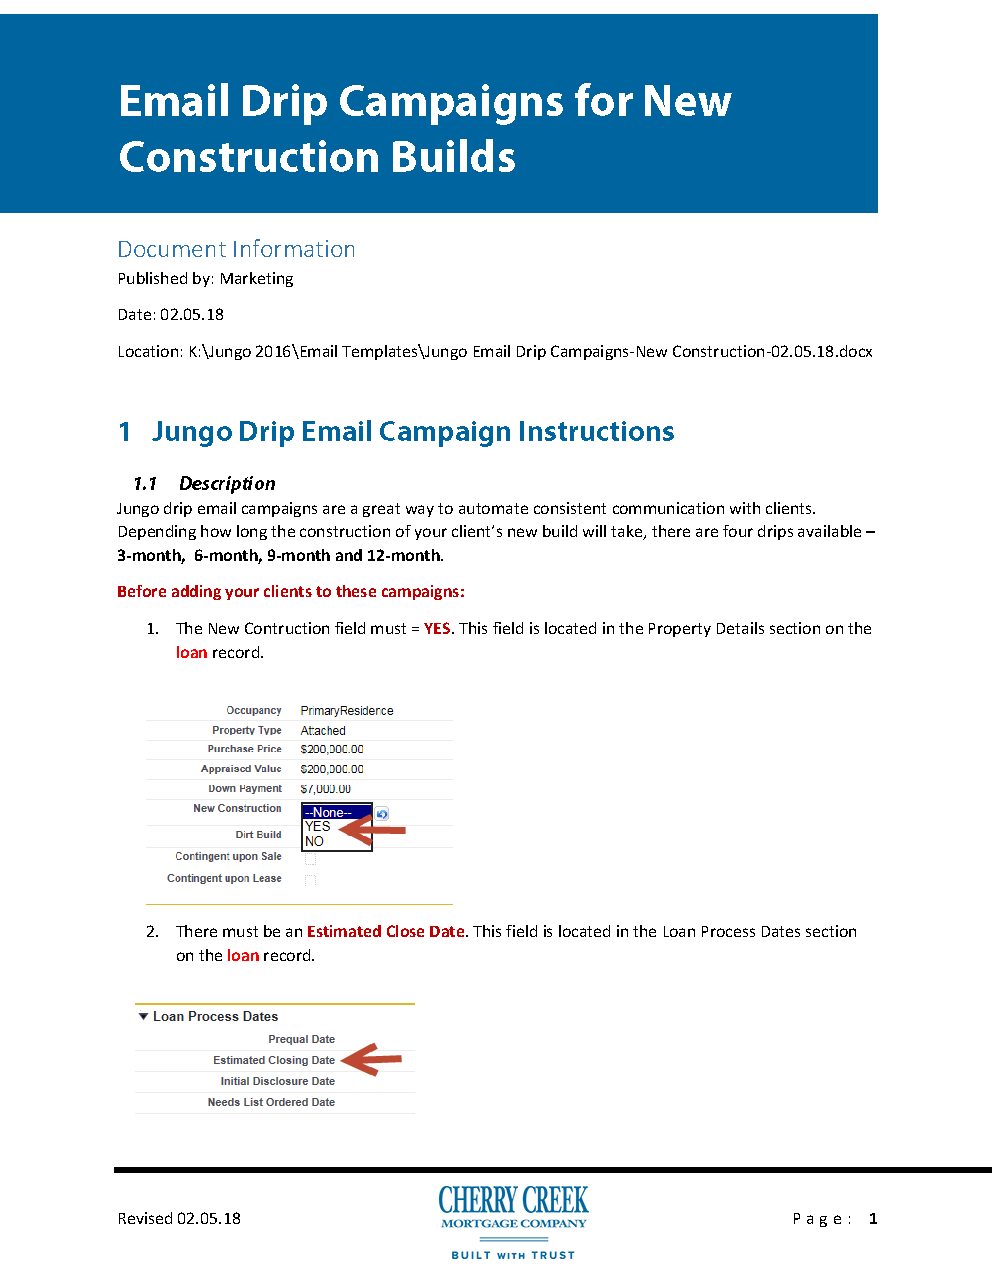 Jungo Email Drip Campaigns-New Construction_Swn4C0z_Page_01.png